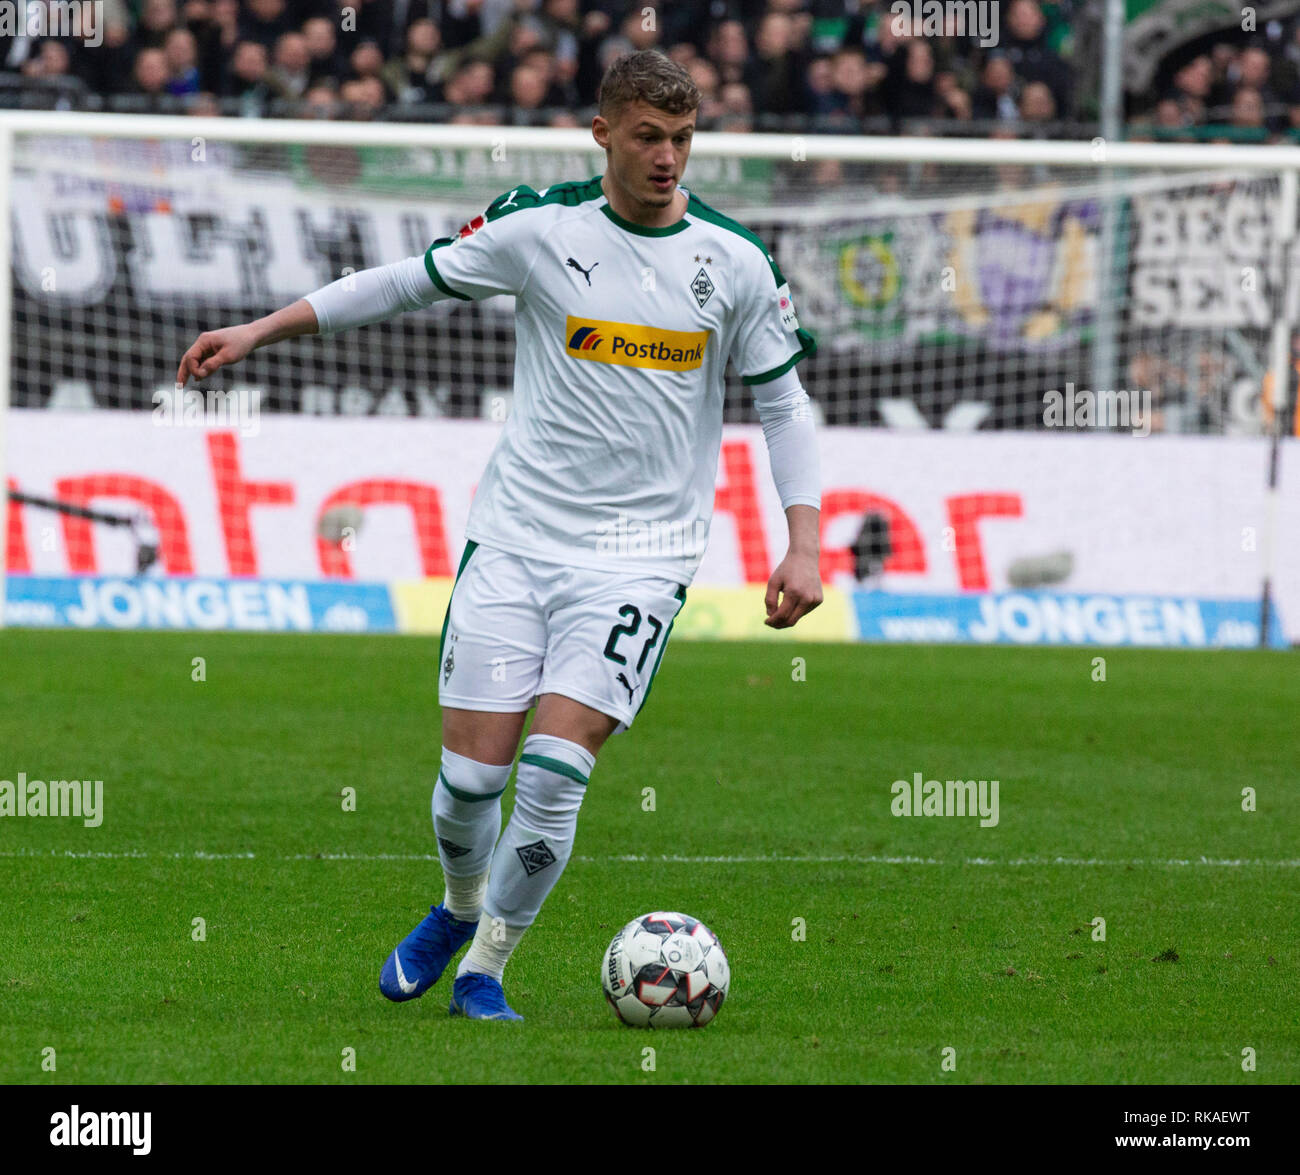 sports, football, Bundesliga, 2018/2019, Borussia Moenchengladbach vs Hertha BSC Berlin 0-3, Stadium Borussia Park, scene of the match, Michael Cuisance (MG) in ball possession, DFL REGULATIONS PROHIBIT ANY USE OF PHOTOGRAPHS AS IMAGE SEQUENCES AND/OR QUASI-VIDEO - Stock Image